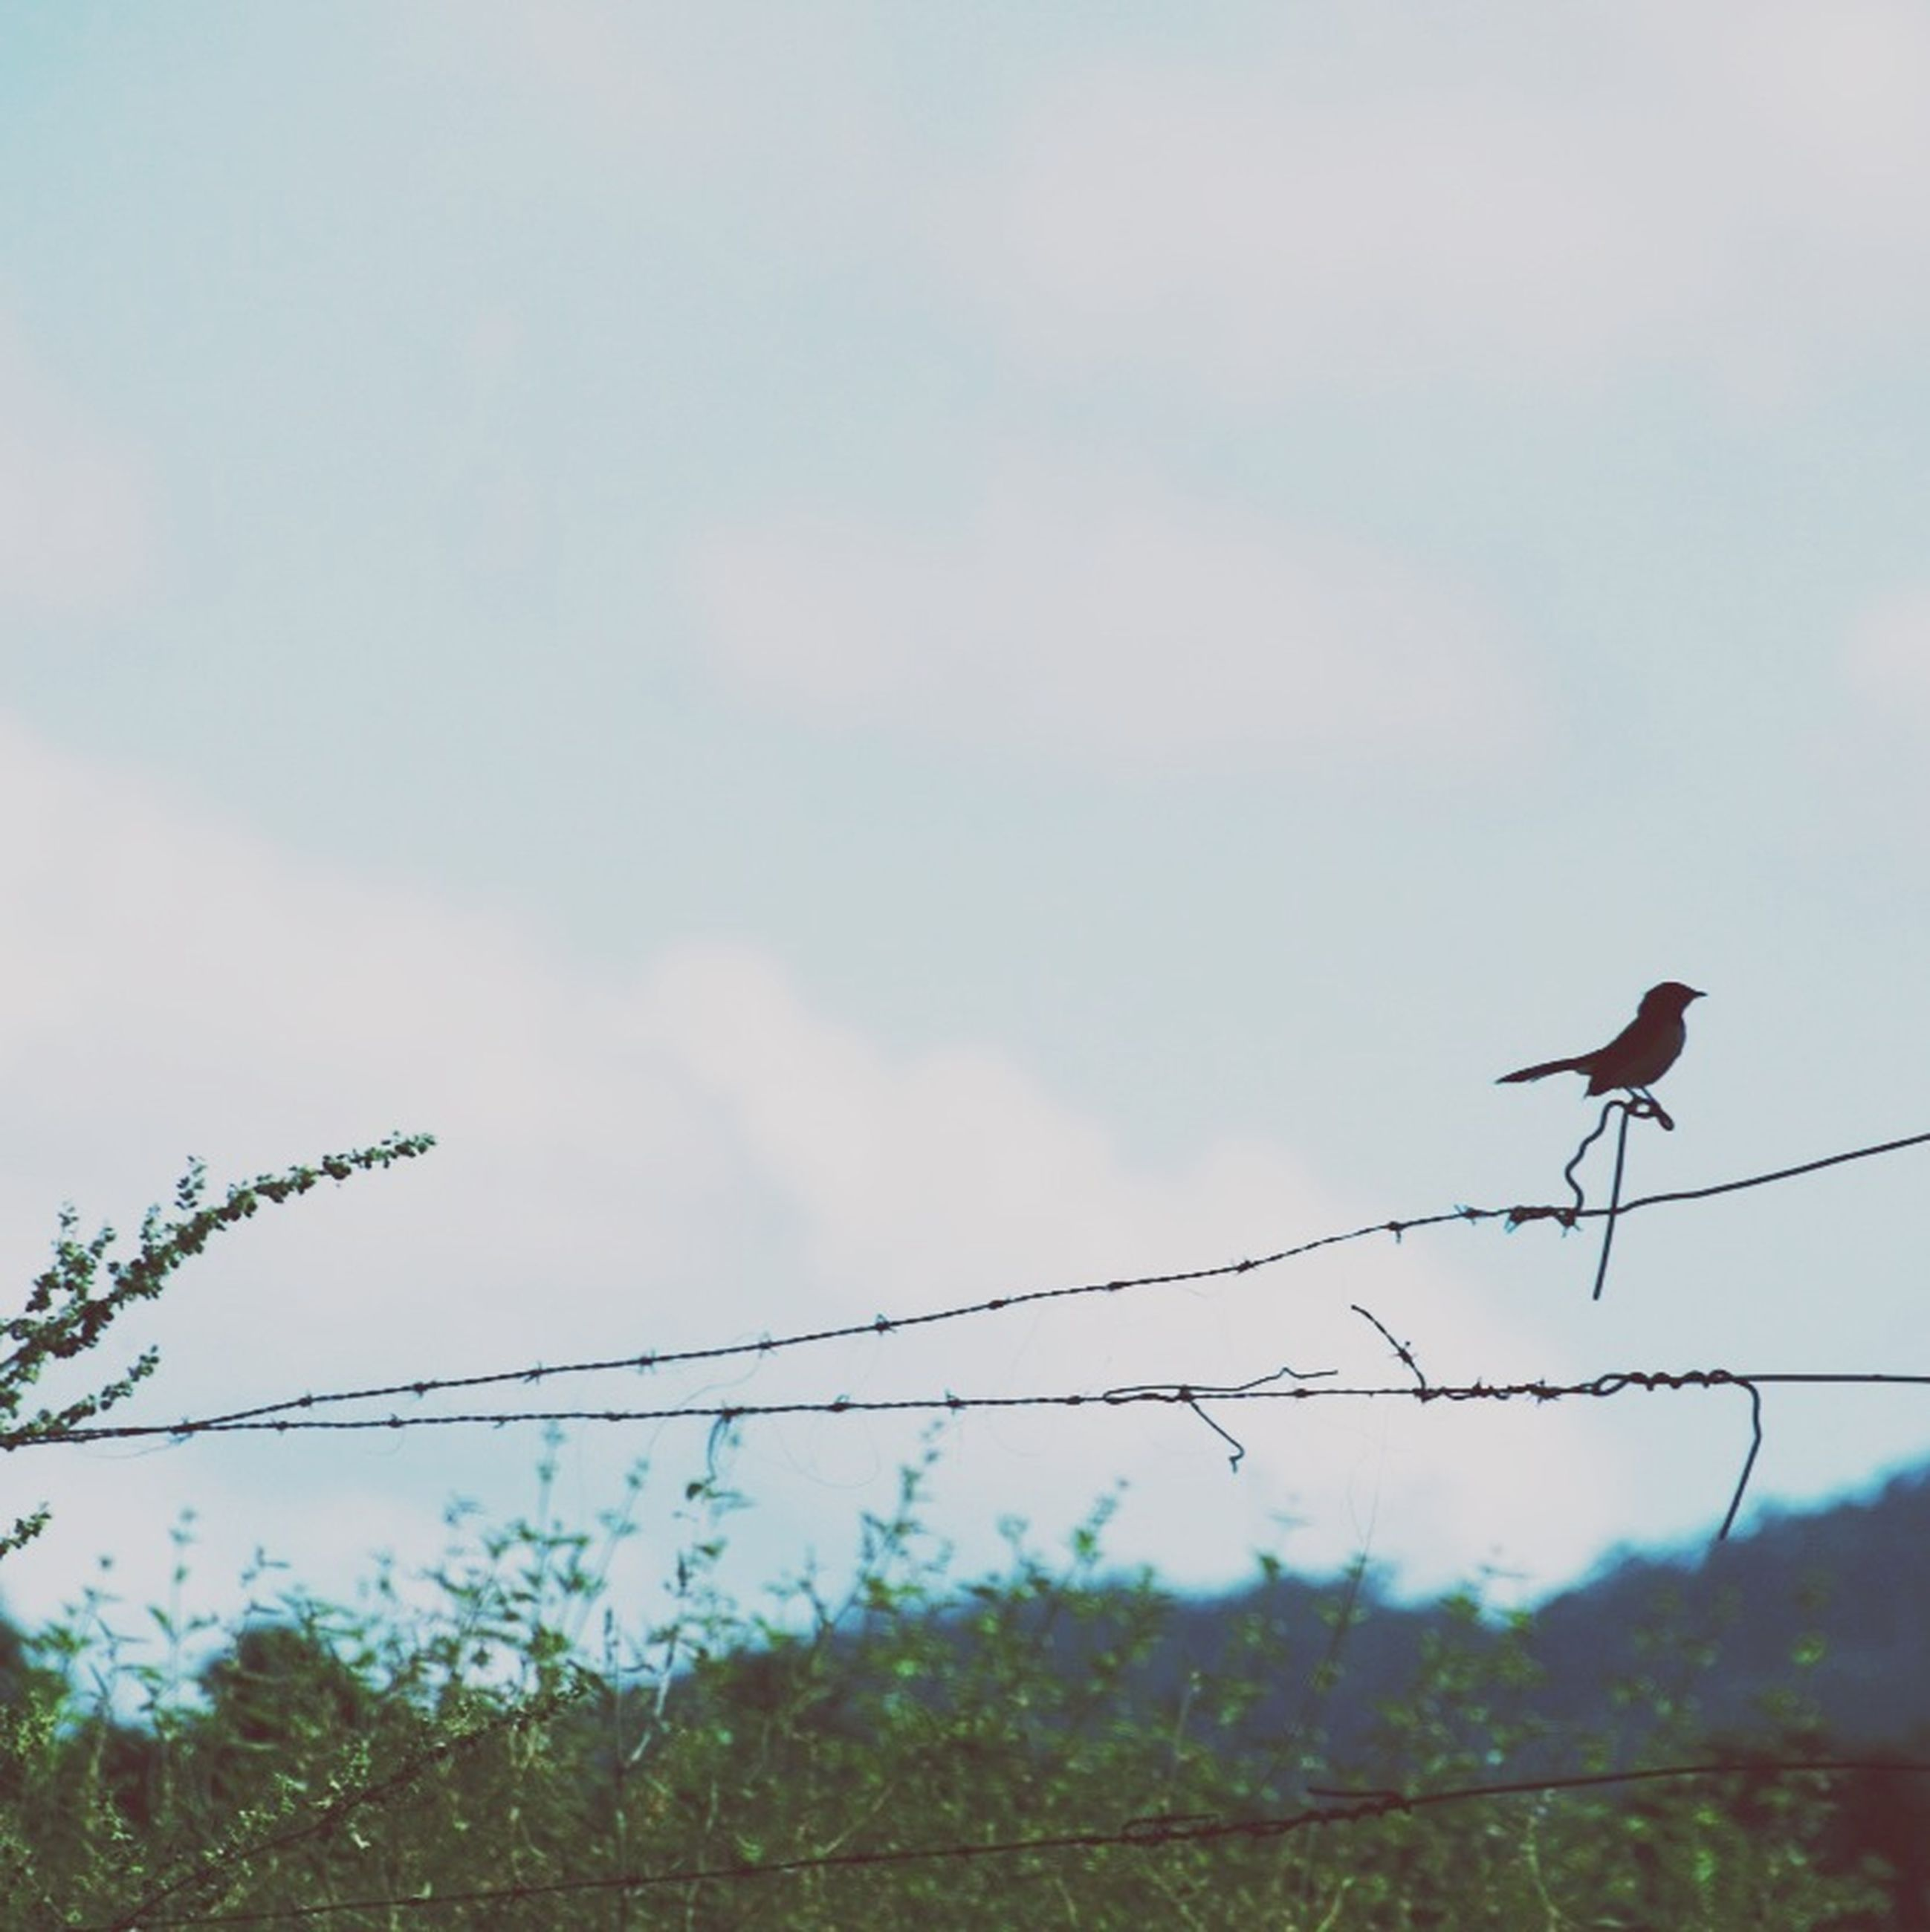 animal themes, bird, animals in the wild, wildlife, perching, sky, flying, one animal, low angle view, nature, two animals, field, flock of birds, spread wings, outdoors, day, no people, cloud - sky, three animals